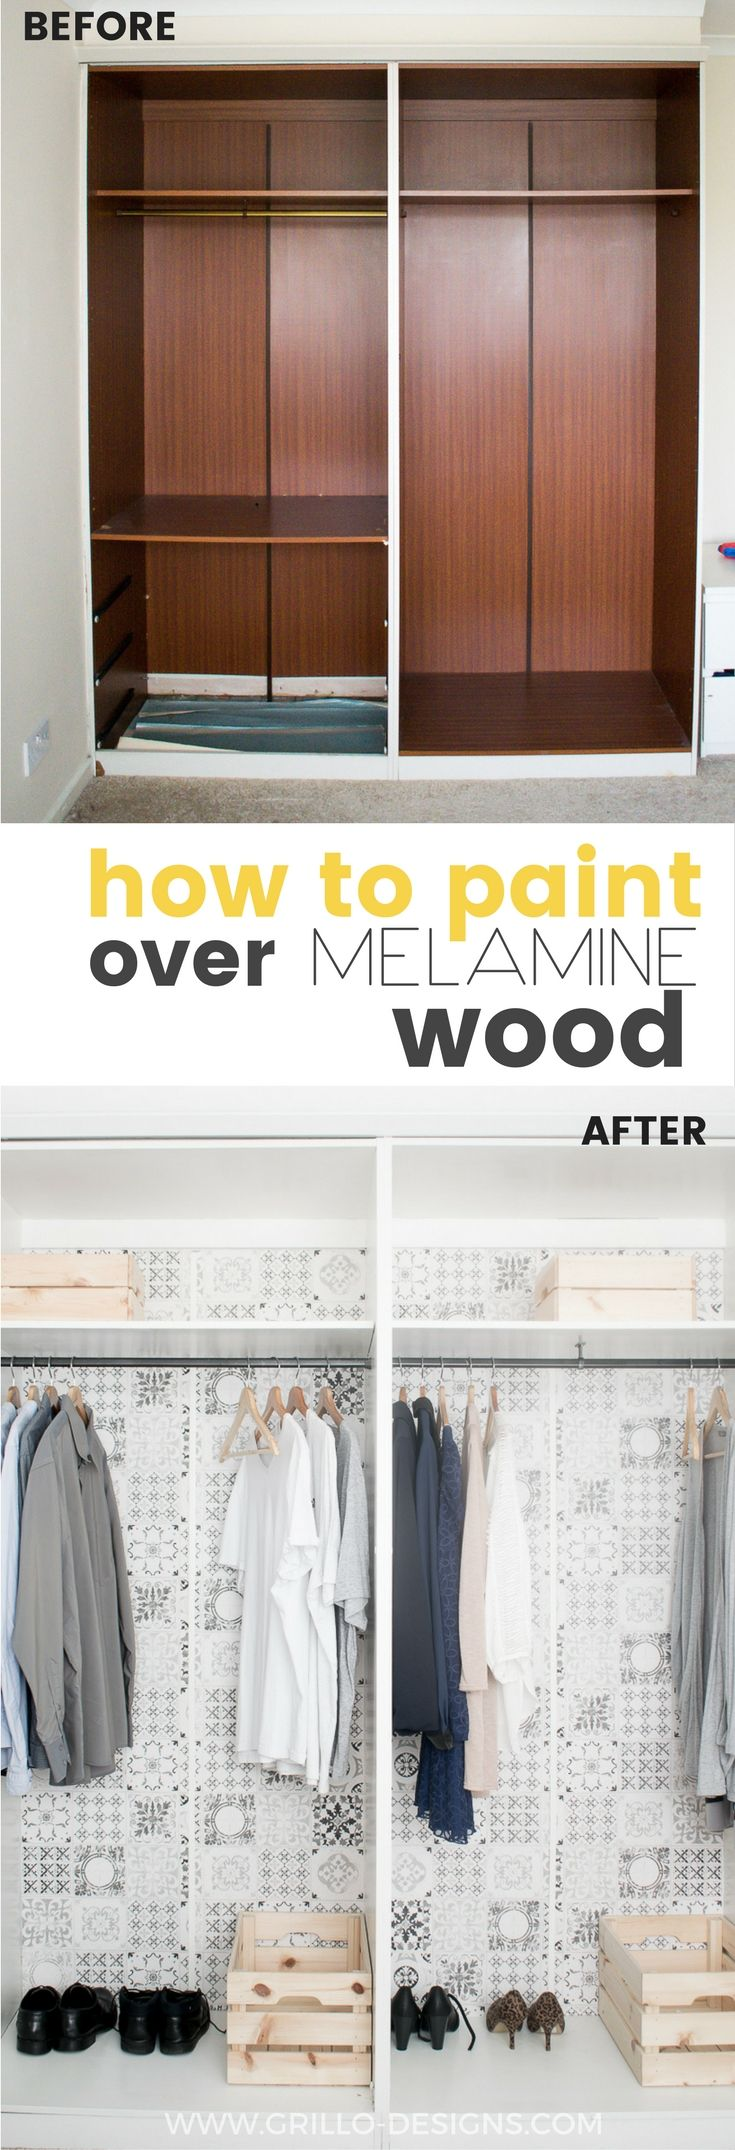 Learn How To Paint Melamine Wood And Turn Any Outdated Piece Of Furniture From Drab To Fab Painting Melamine Furniture Makeover Painting Laminate Furniture